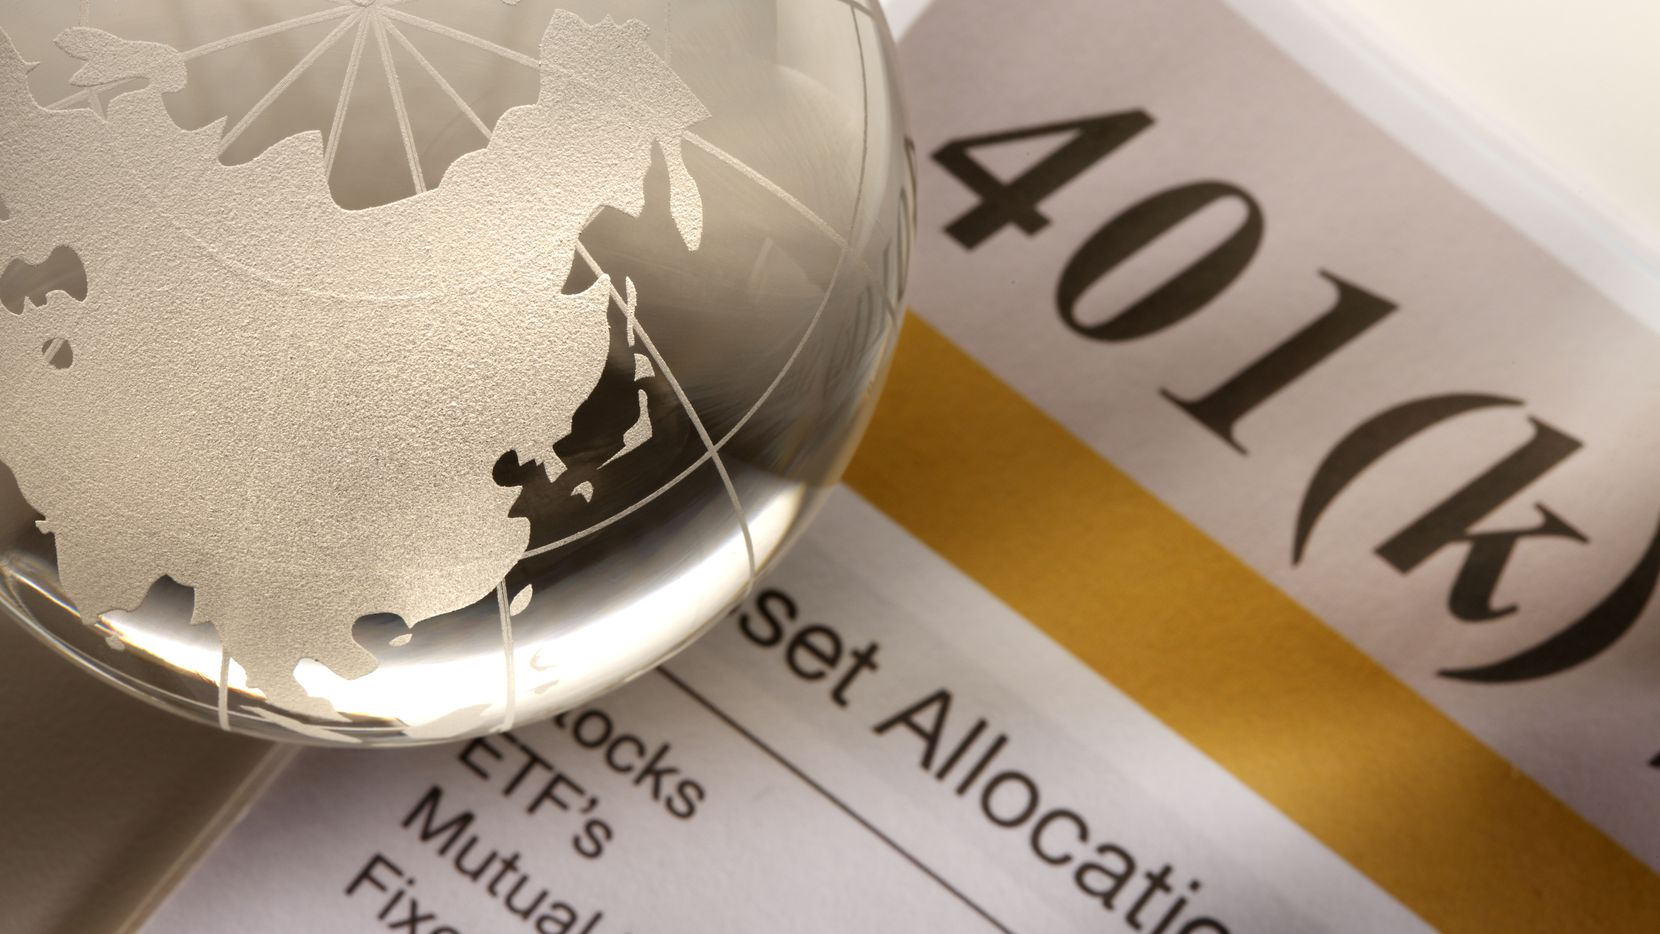 A globe showing Asia on a 401k statement.